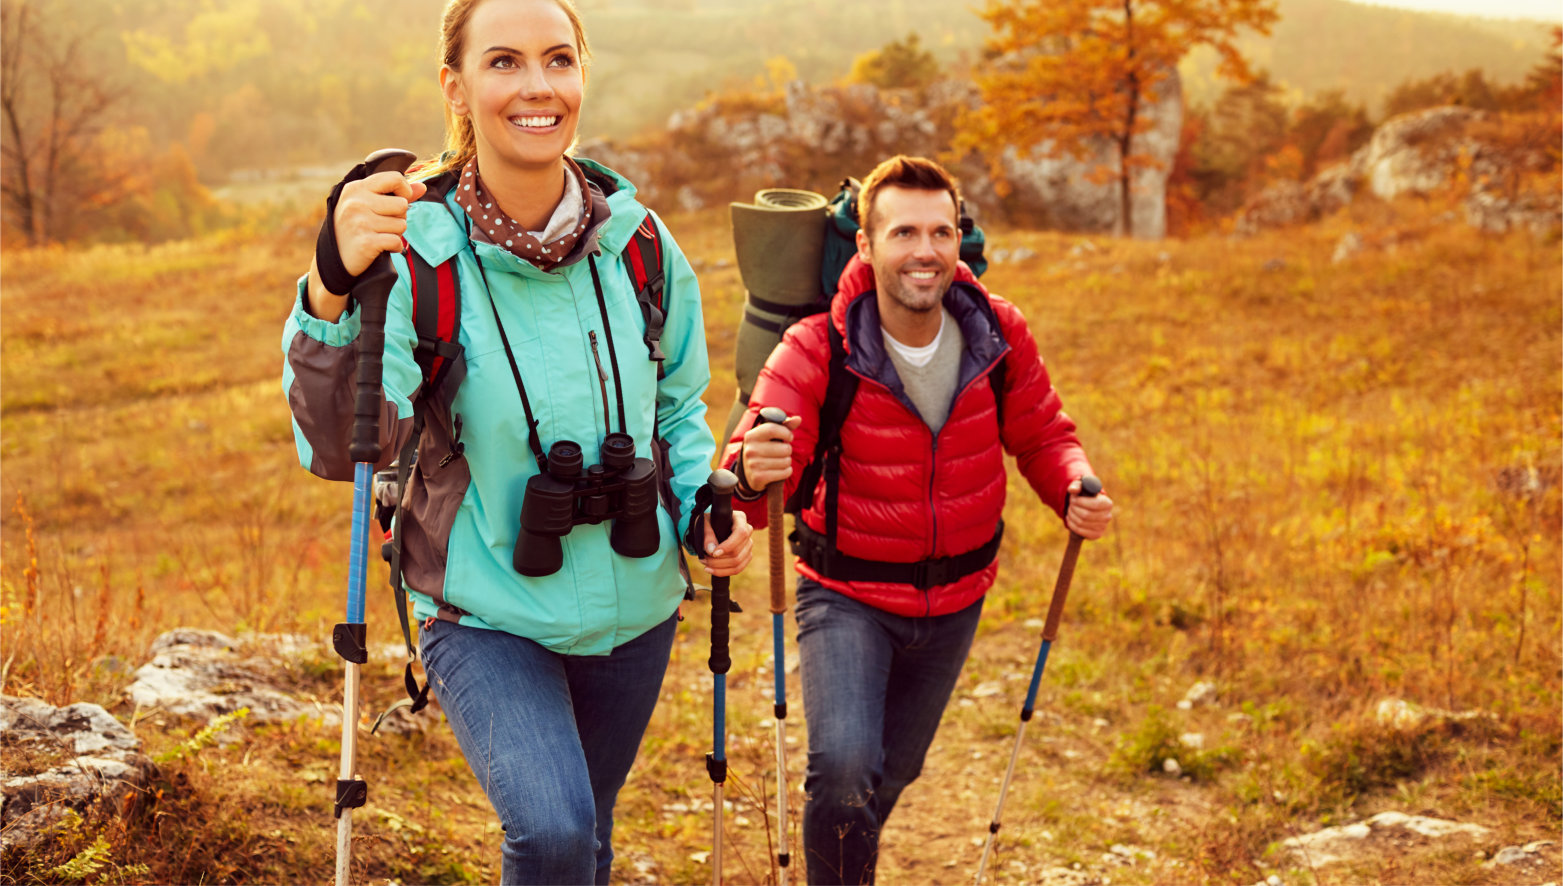 Couple,Hiking,During,Autumn,Vacation,With,Sticks,And,Backpacks